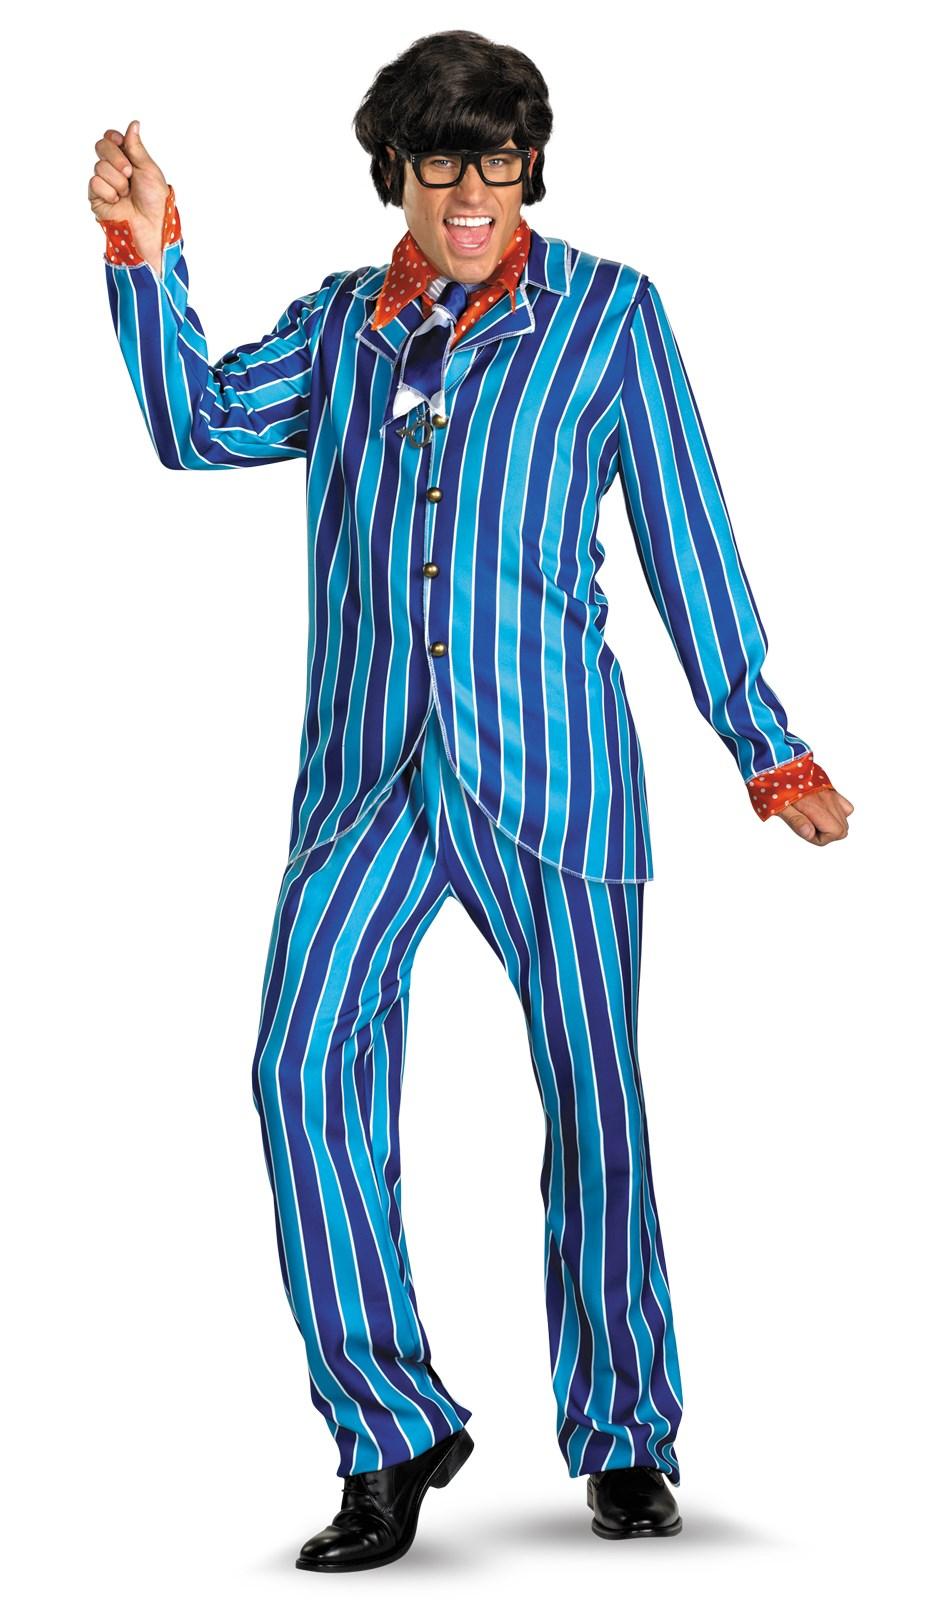 Image of Austin Powers Carnaby Street Blue Suit Deluxe Adult Costume